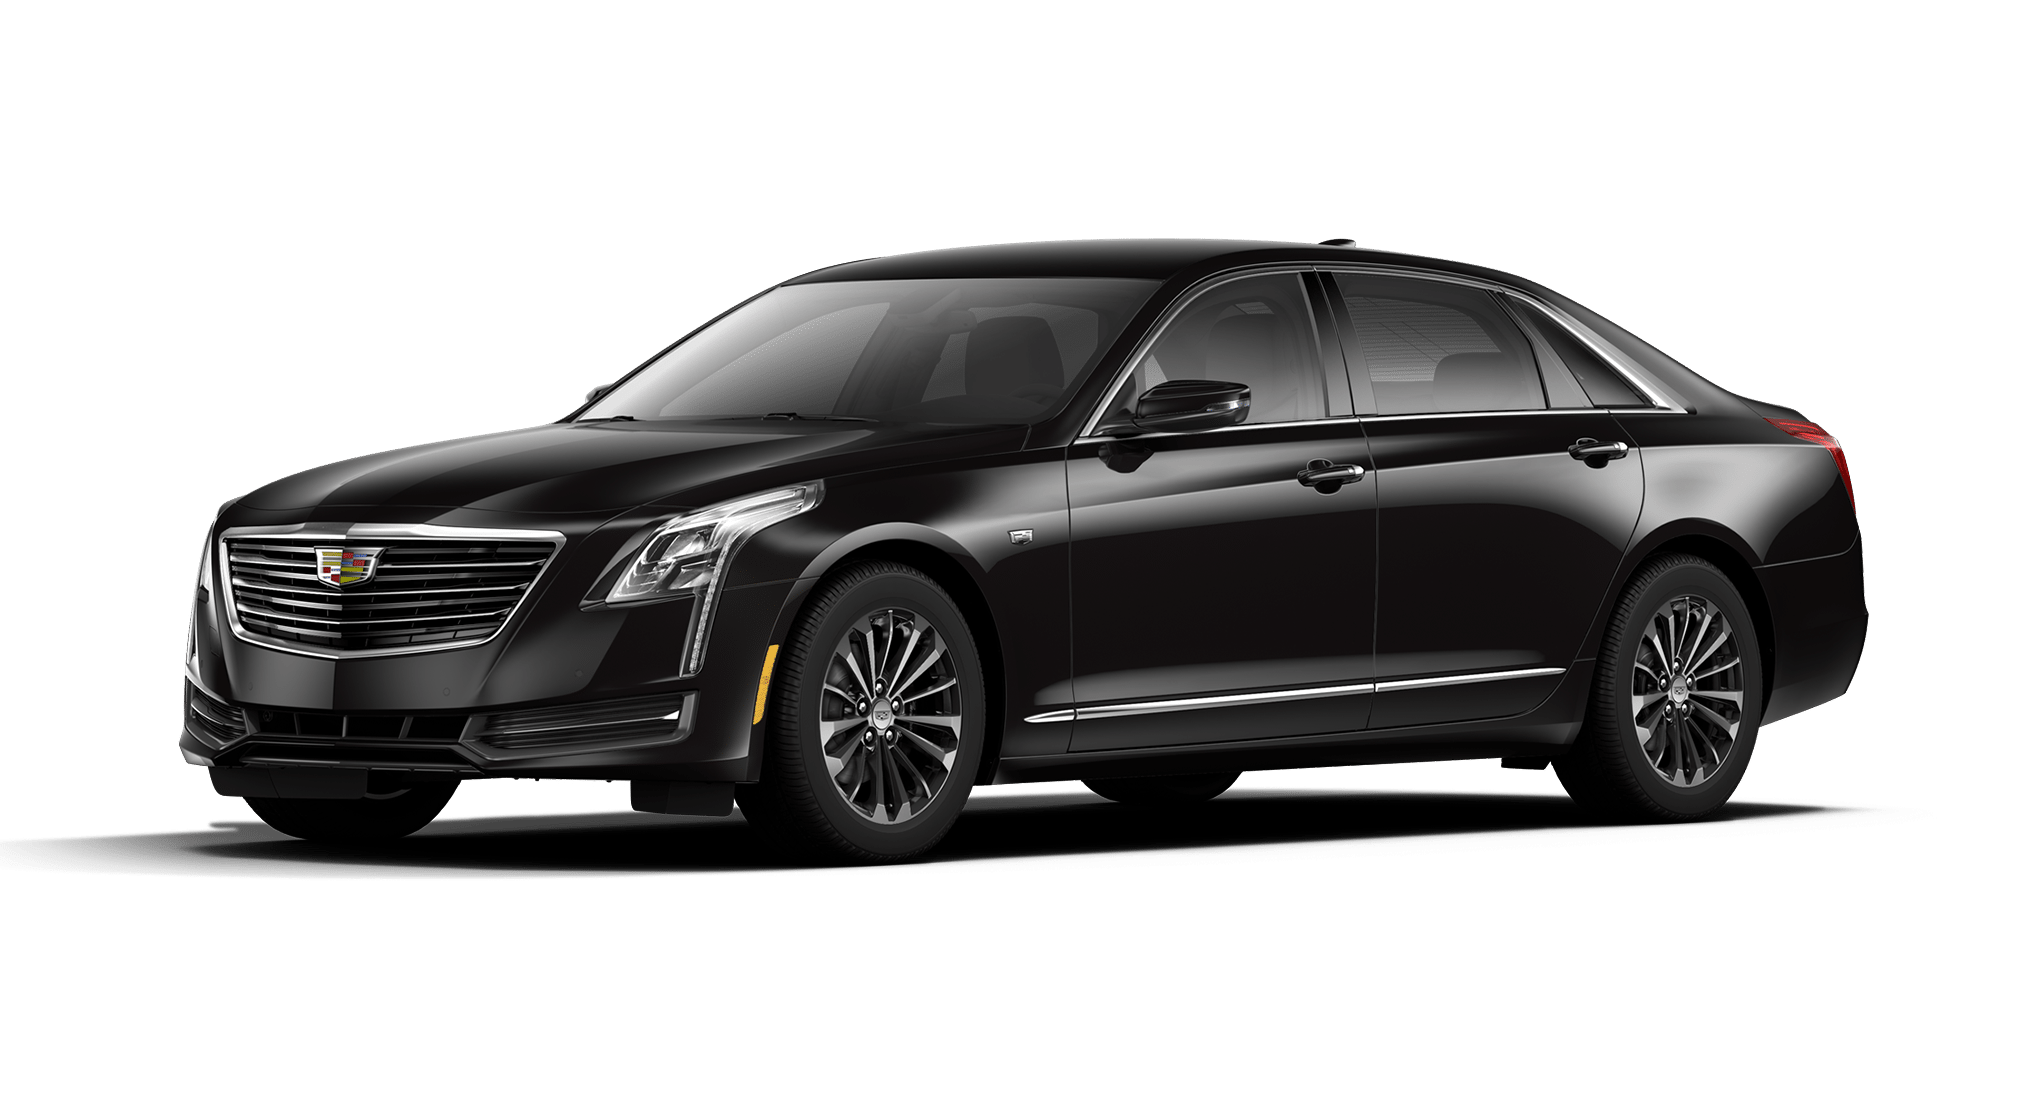 2017 Cadillac CT6 Stellar Black Metallic